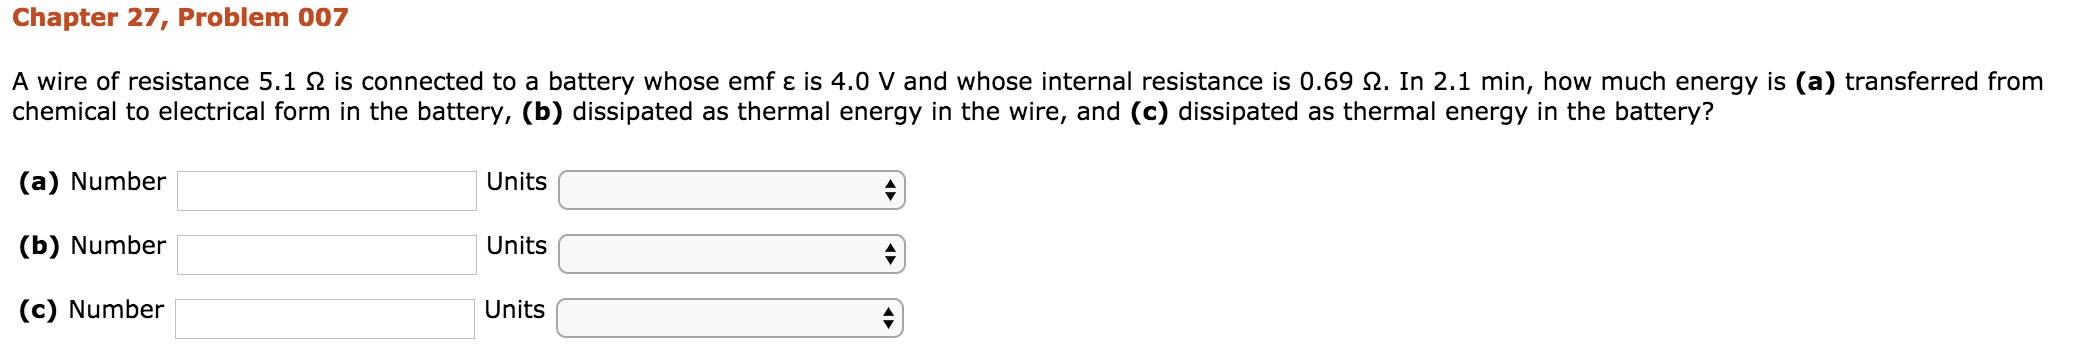 Chapter 27, Problem 007 from A wire of resistance 5.1 Ω is connected to a battery whose emf ε is 4.0 V and whose internal resistance is 0.69 Ω. In 2.1 min, how much energy is (a) transferred from eergy In the narerg s() chemical to electrical form in the battery, (b) dissipated as thermal energy in the wire, and (c) dissipated as thermal energy in the battery? (a) Number (b) Number (c) Number Units Units Units